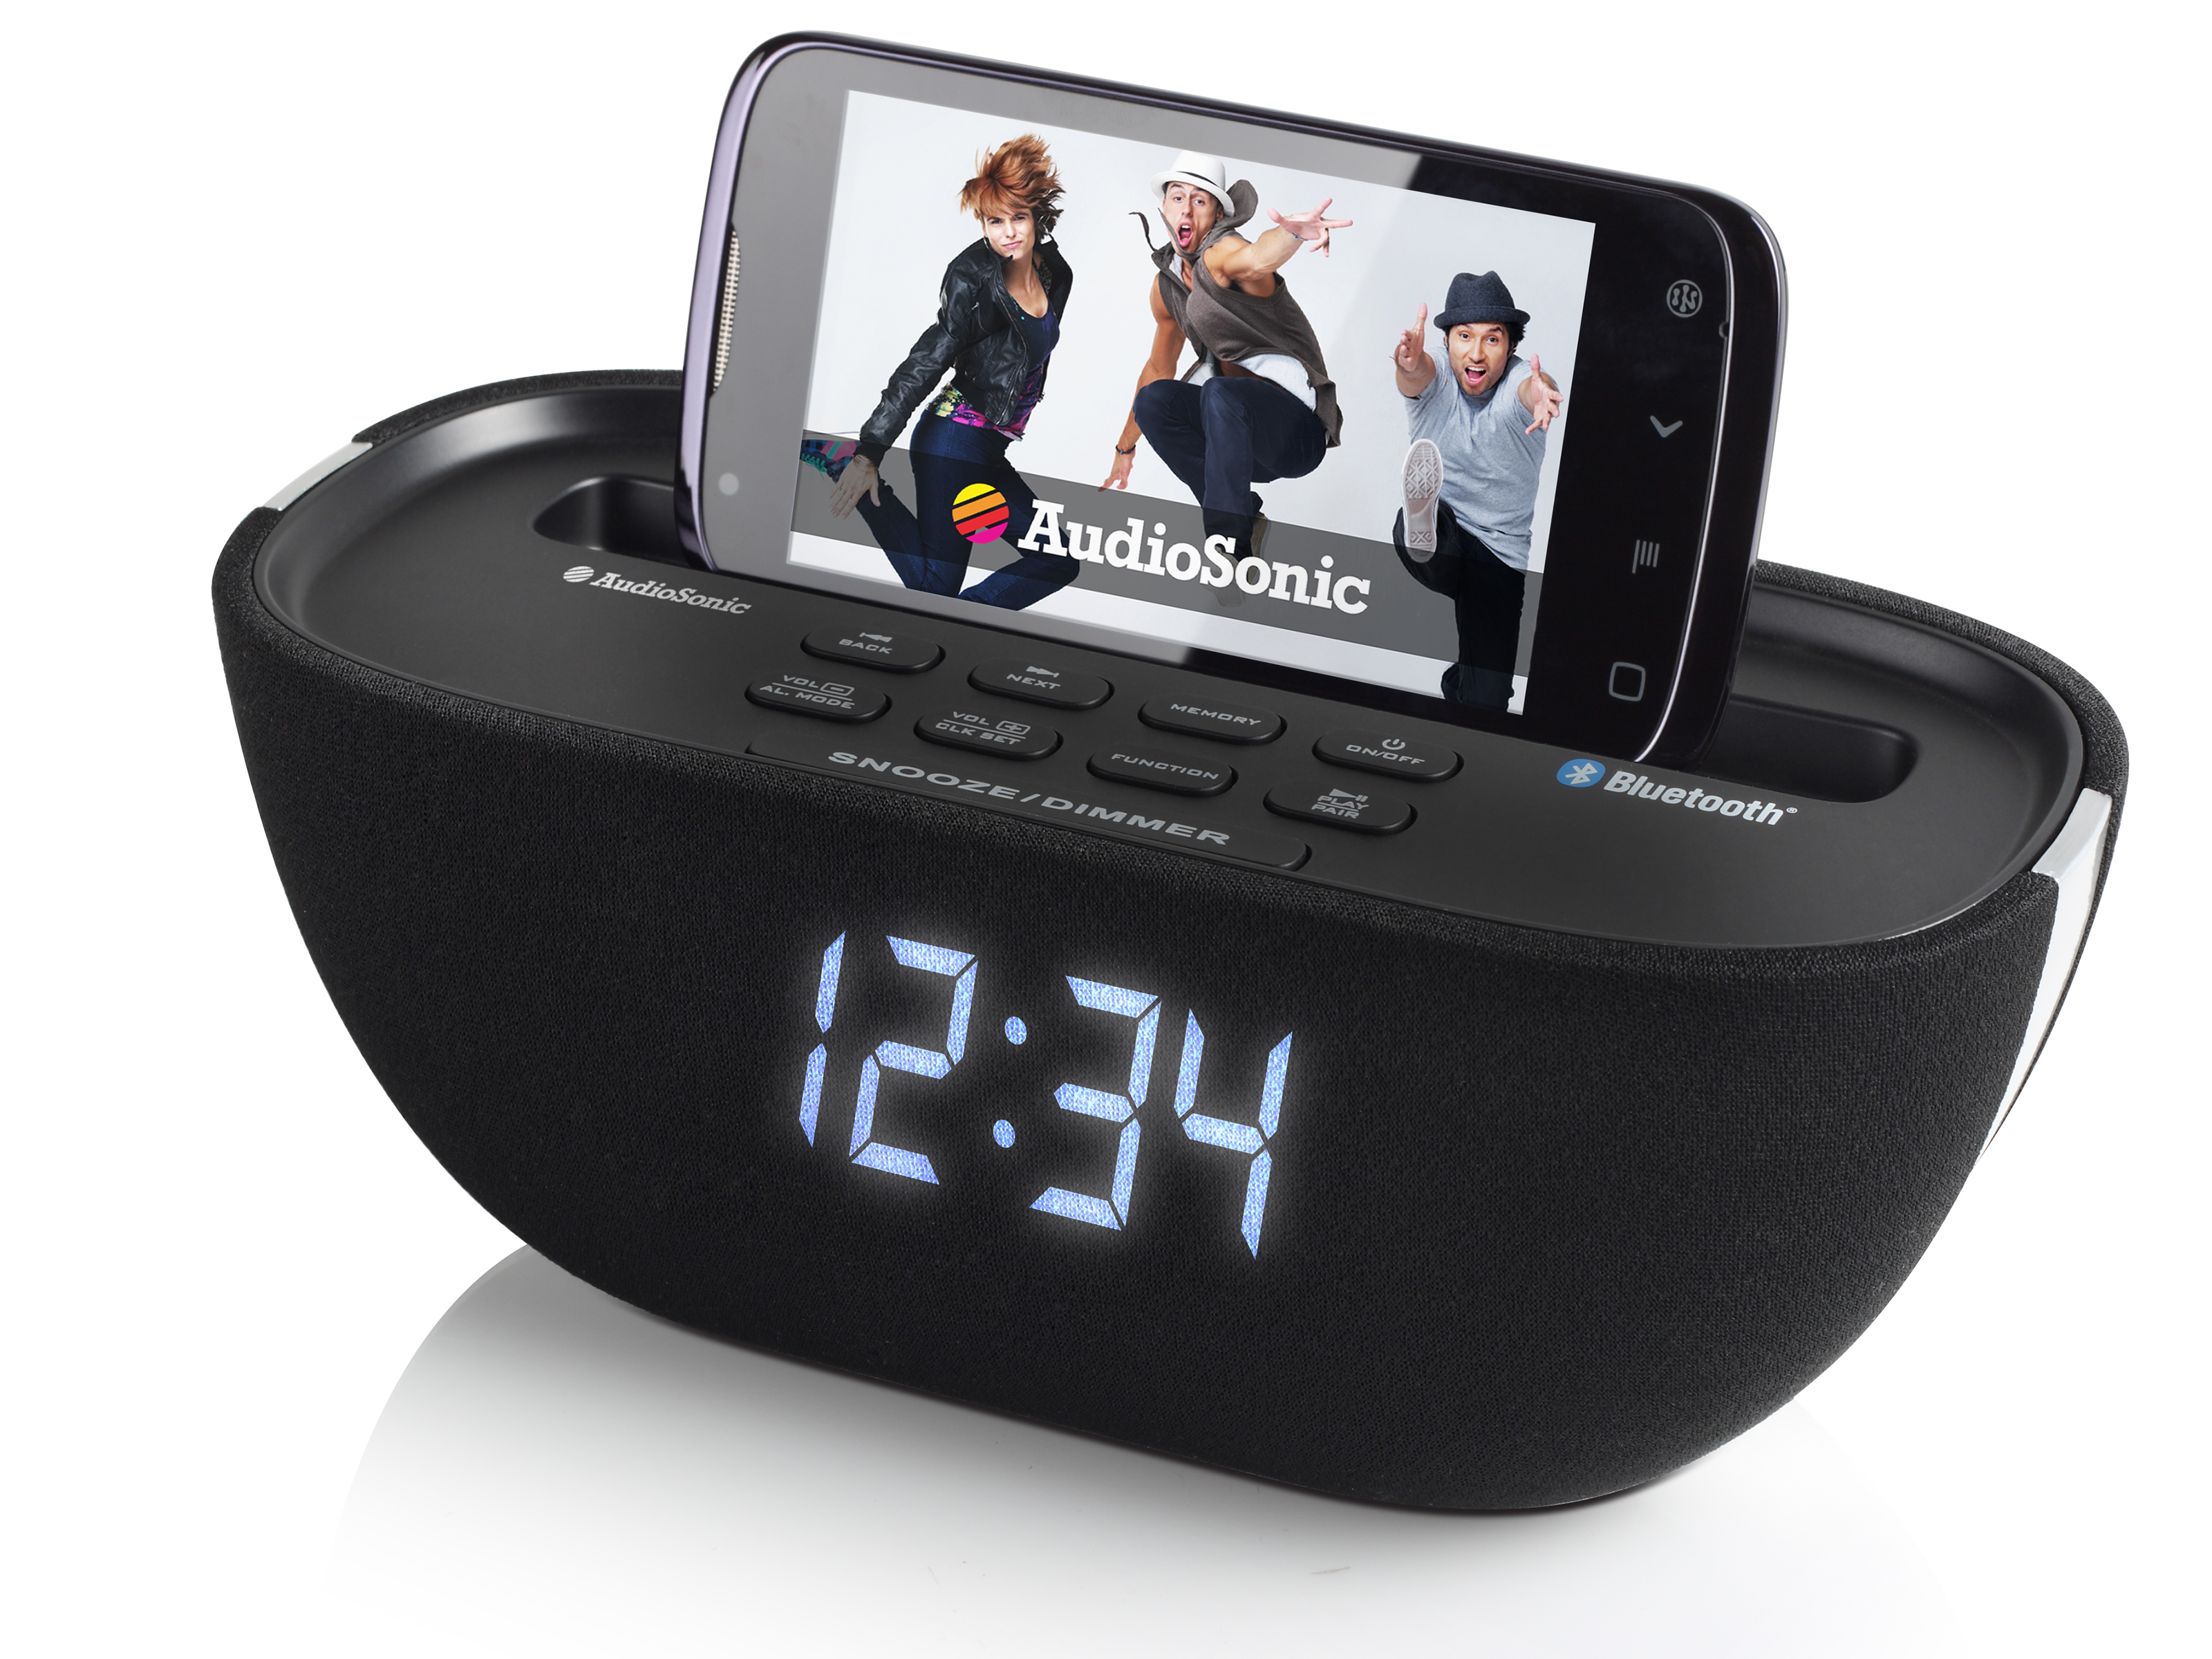 AudioSonic CL-1462 Orologio Digitale Nero radio